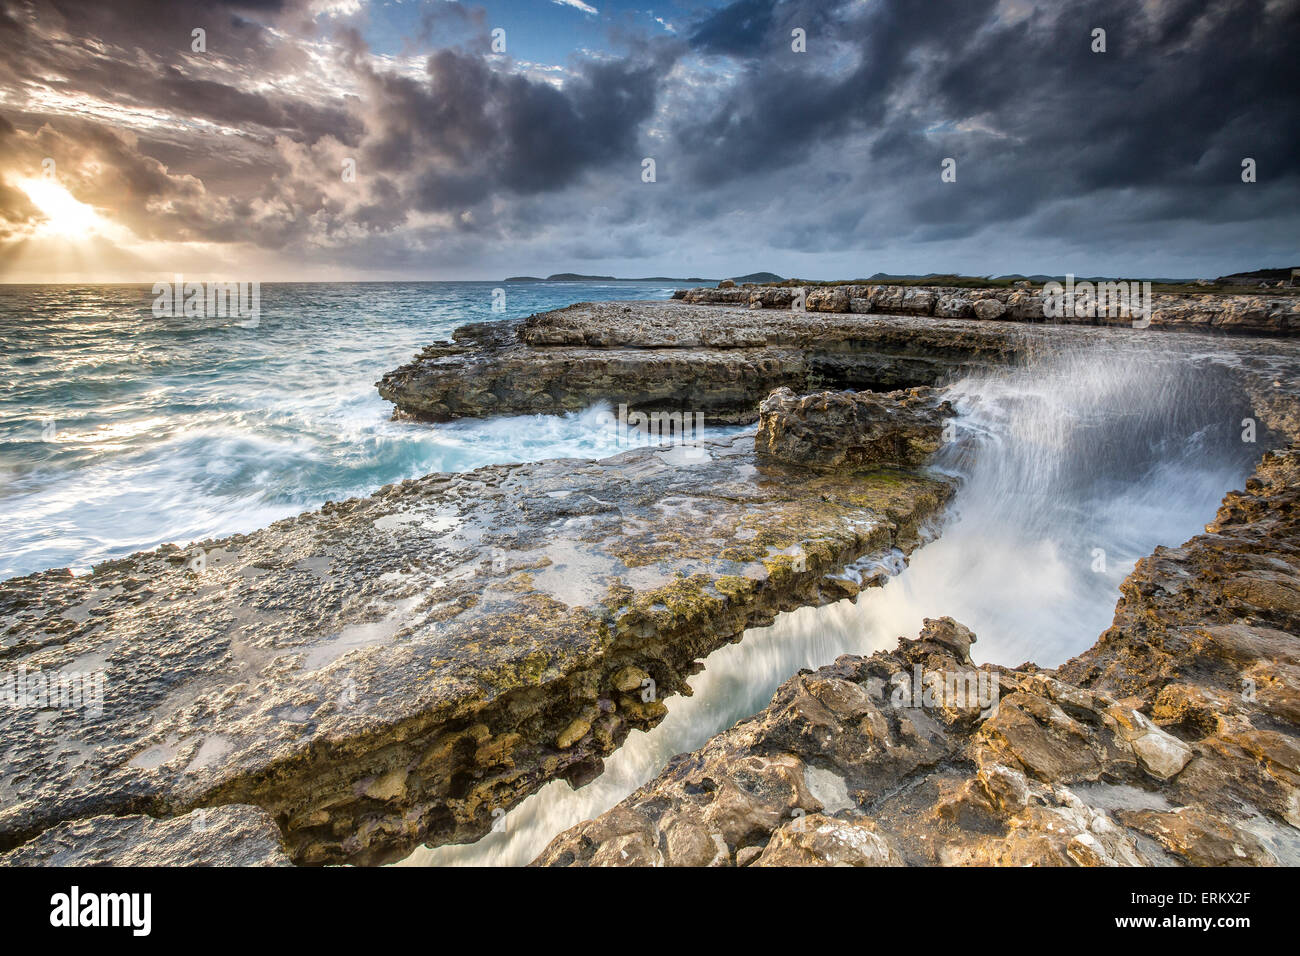 Rocks and crashing waves at Devil's Bridge, a natural arch carved by the sea, Antigua, Leeward Islands, West - Stock Image